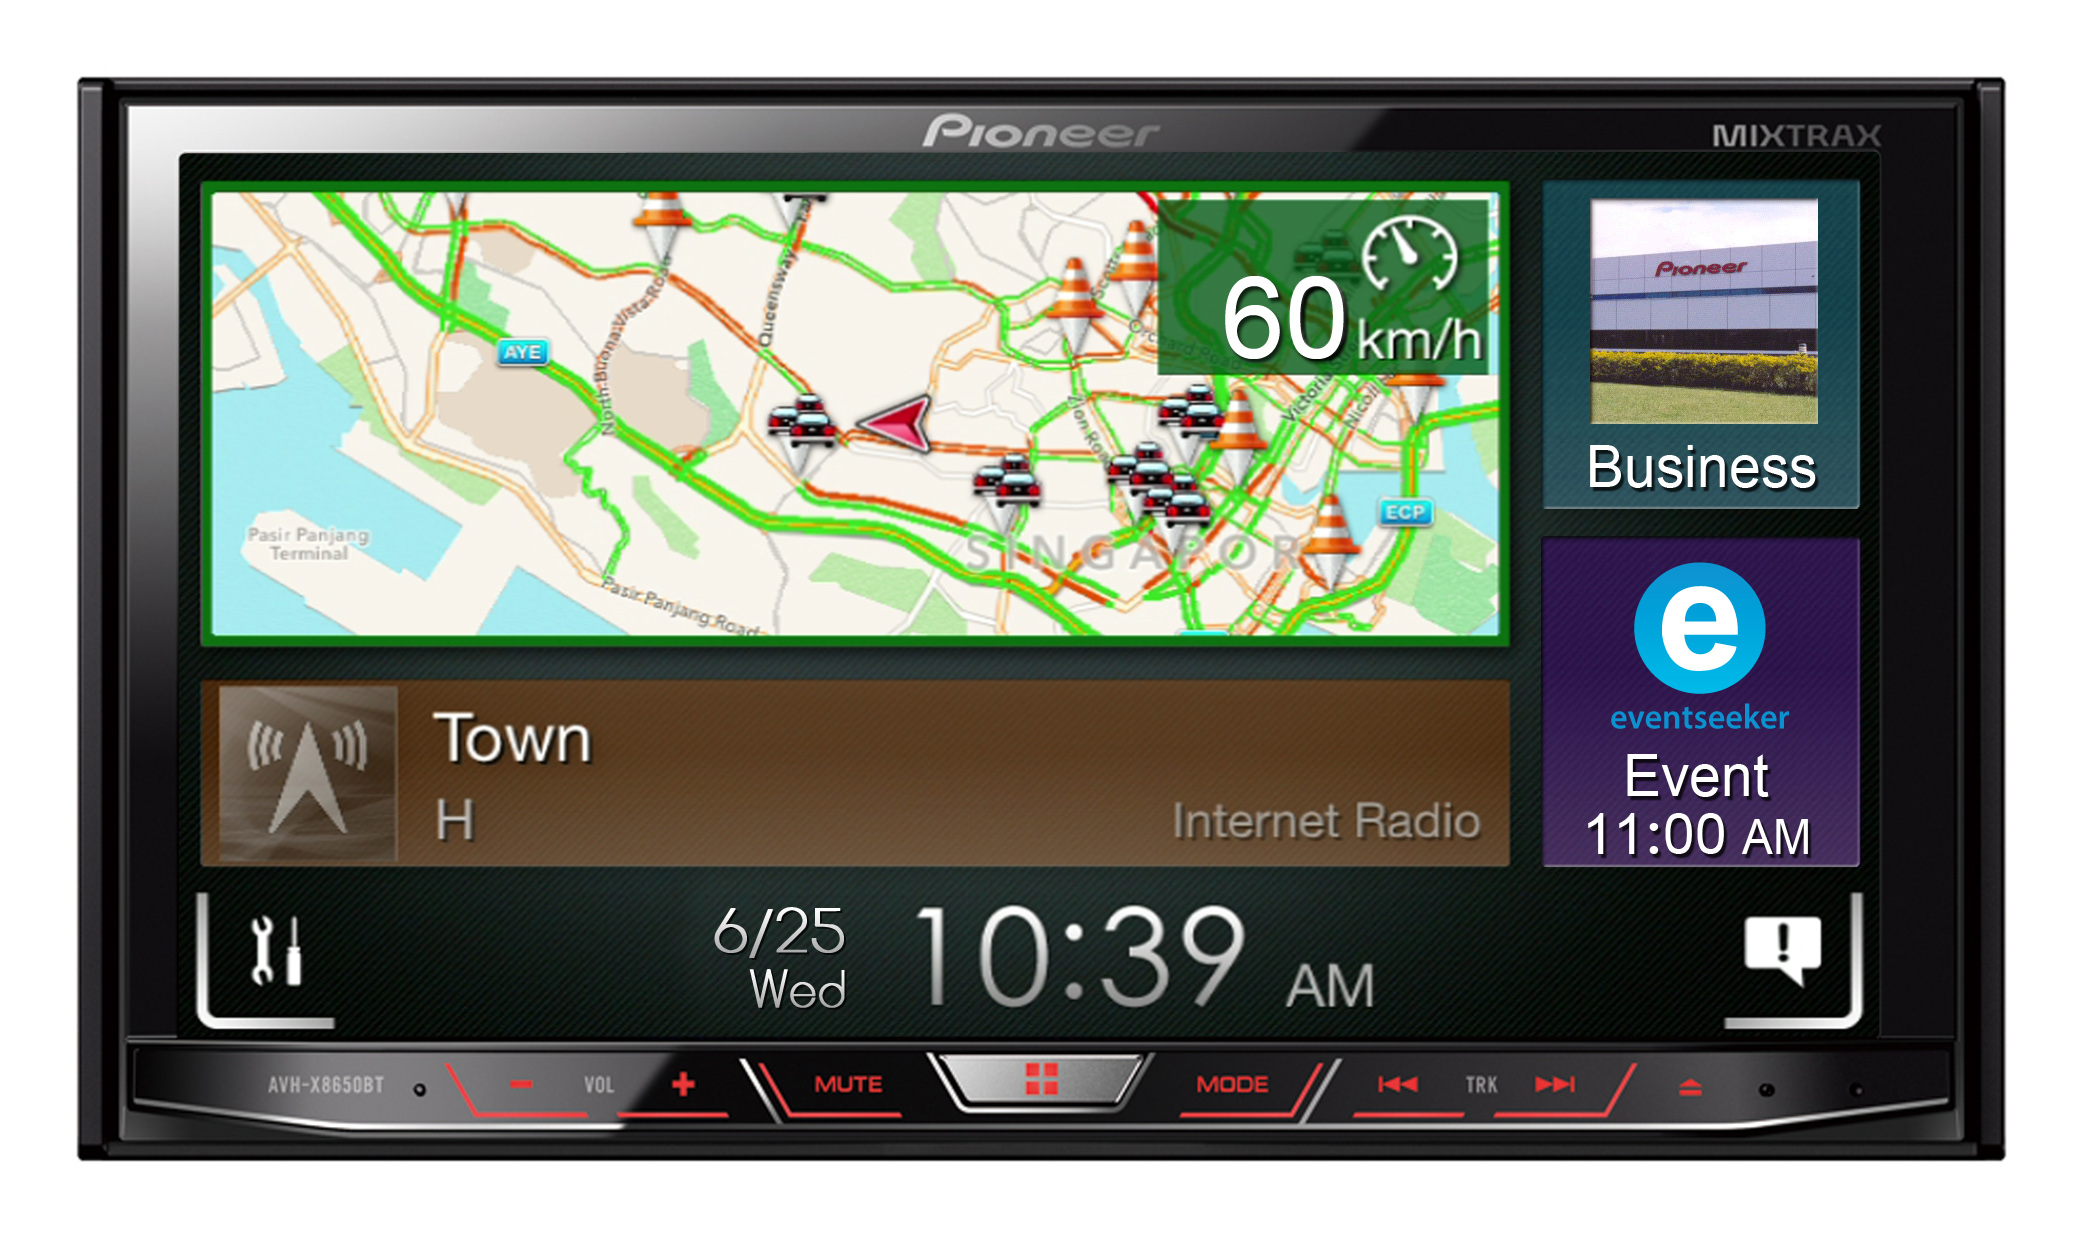 News: Pioneer delivers dynamic content to the car with AppRadioLIVE app